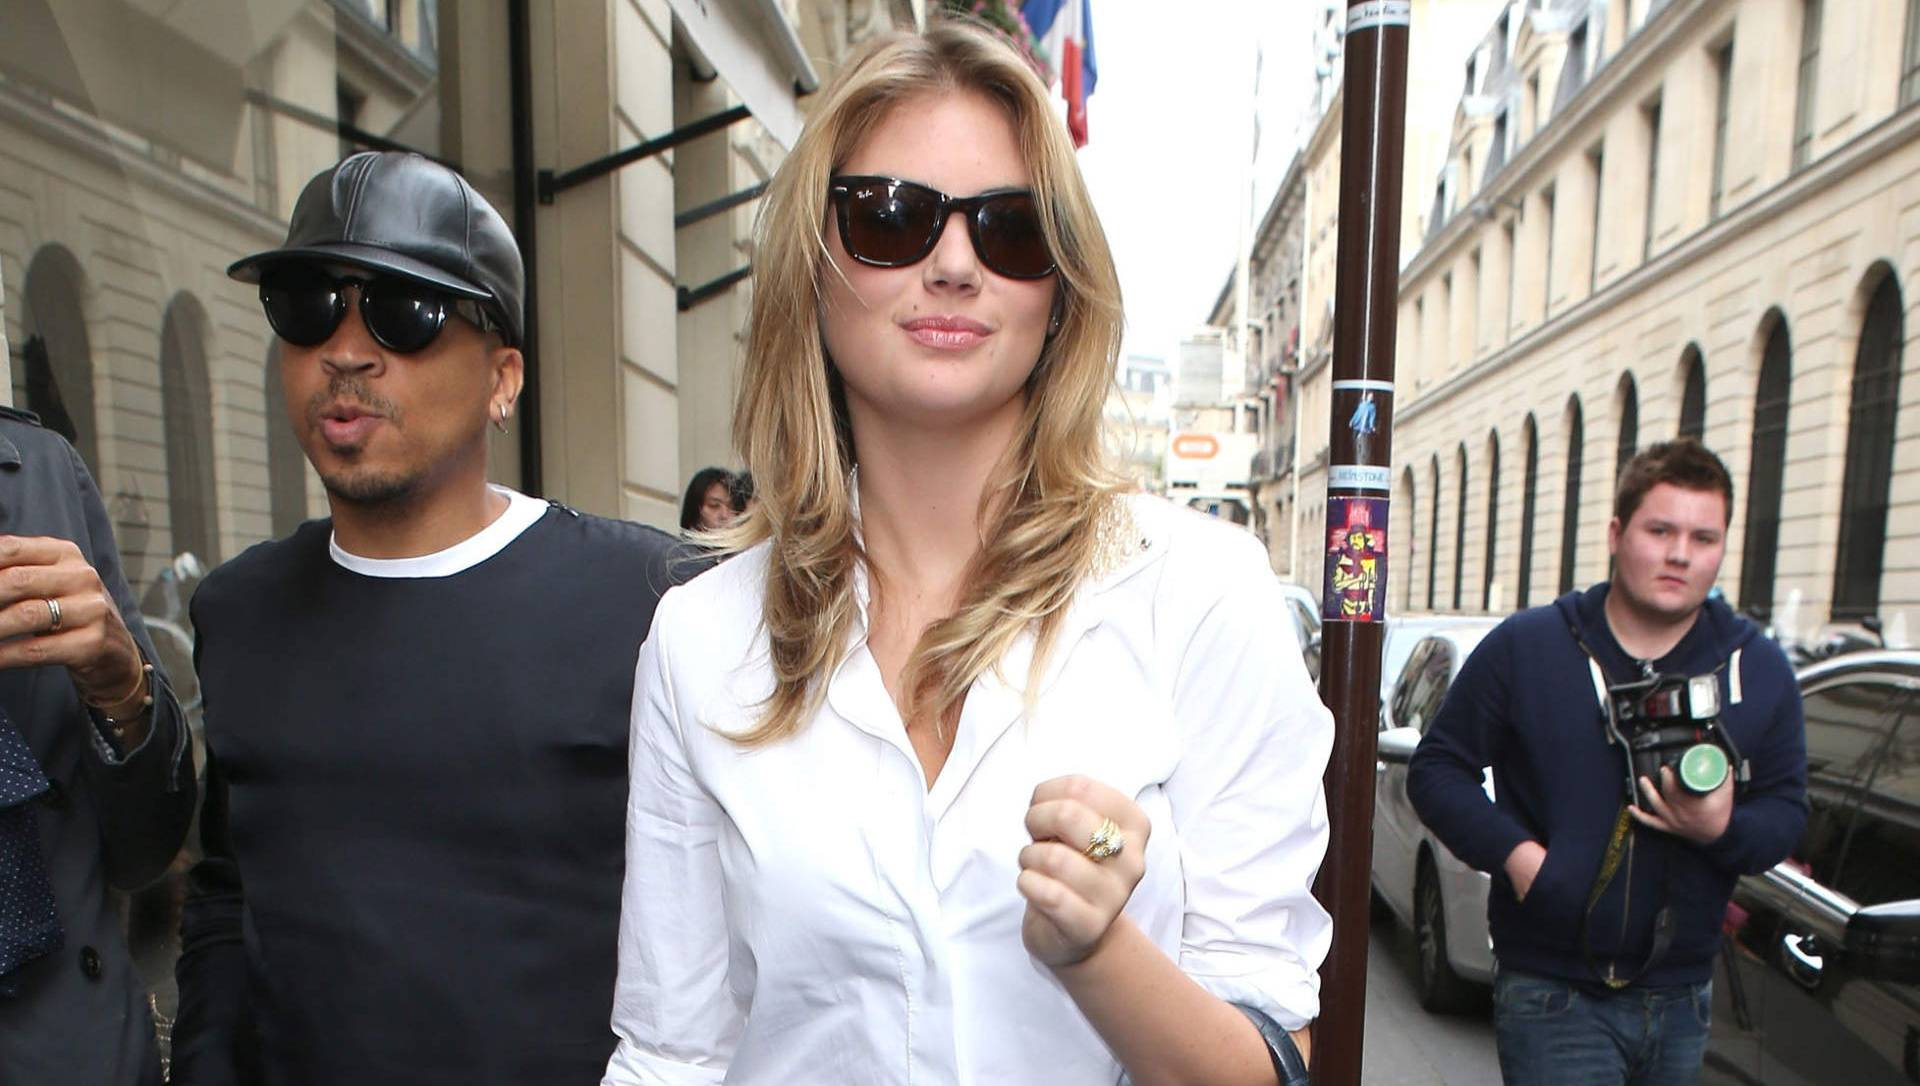 Kate upton dating in Perth